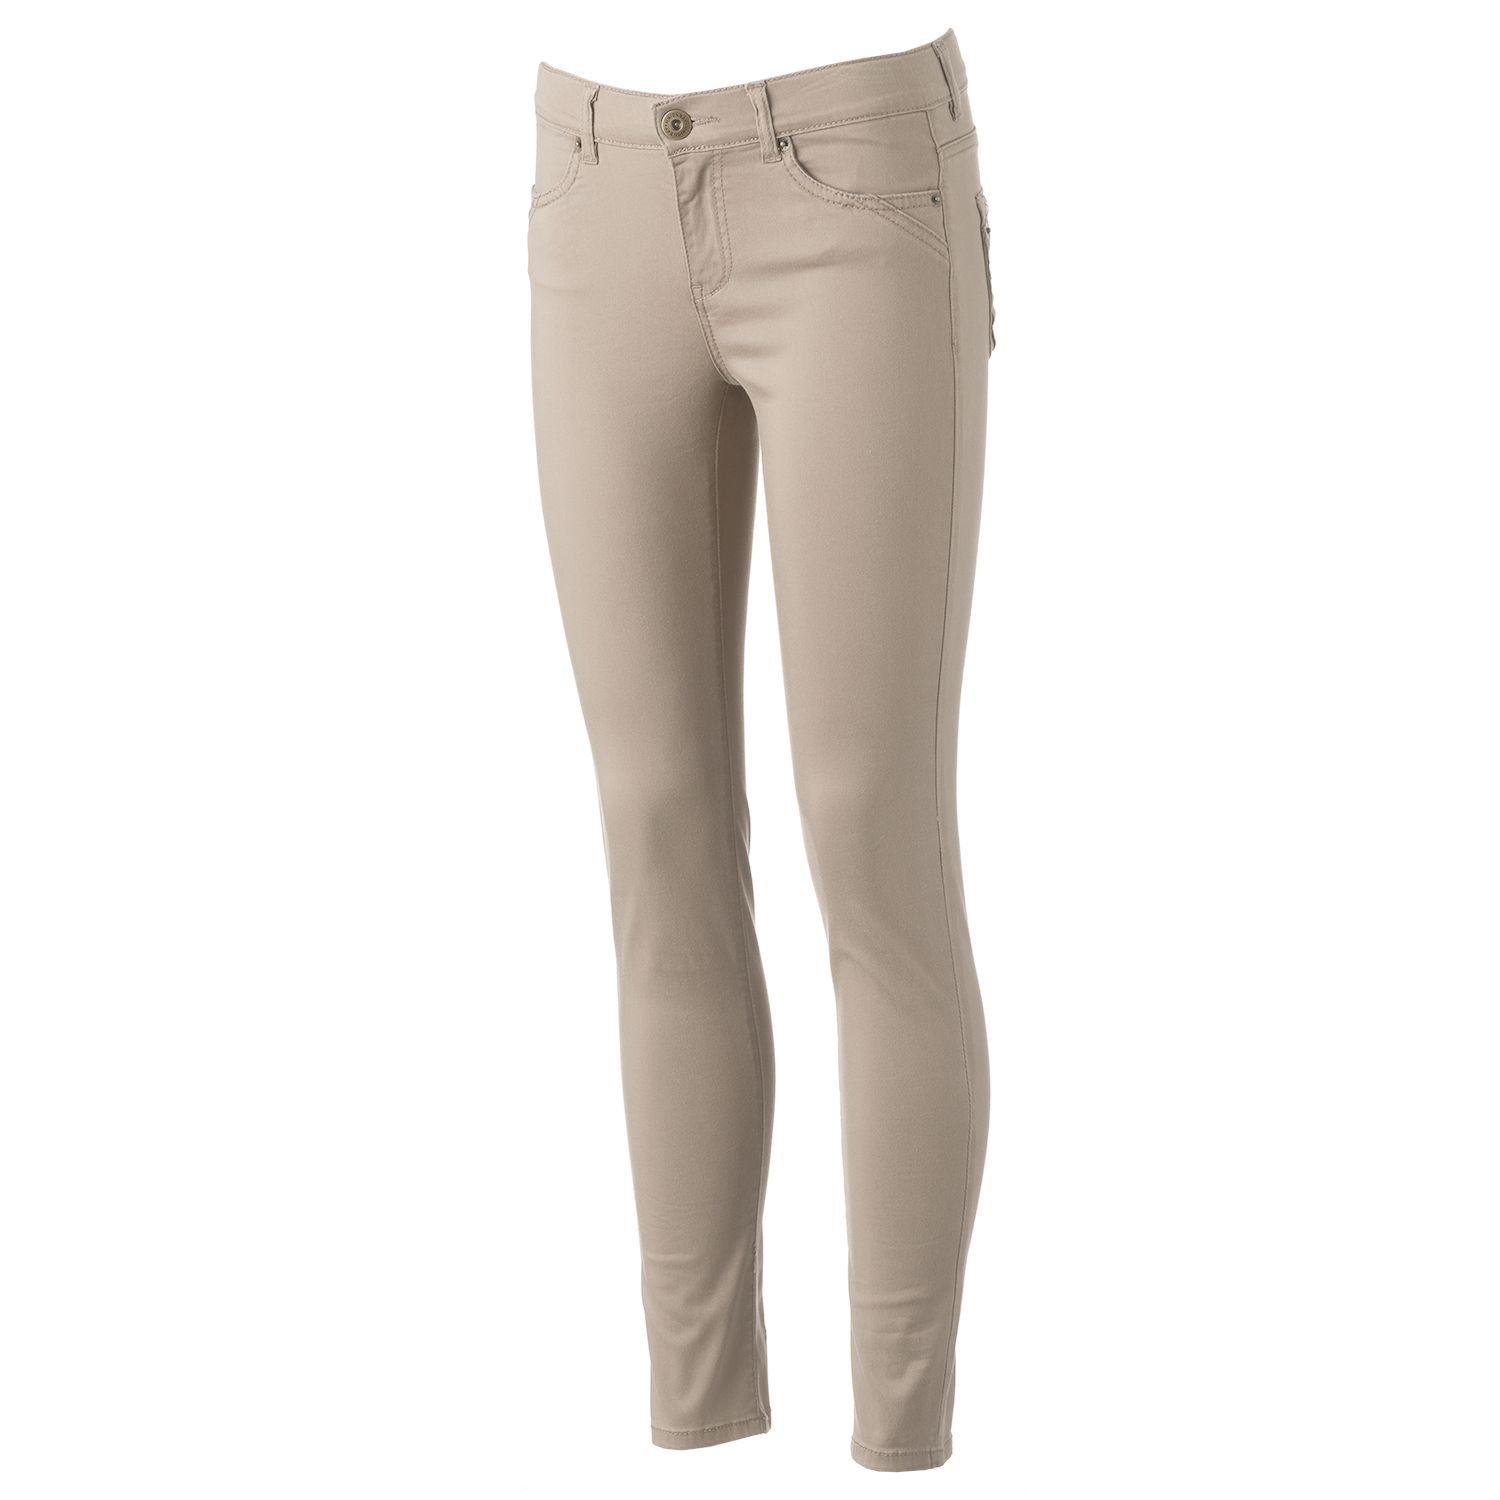 Khaki Pants For Teens GawAAhN6